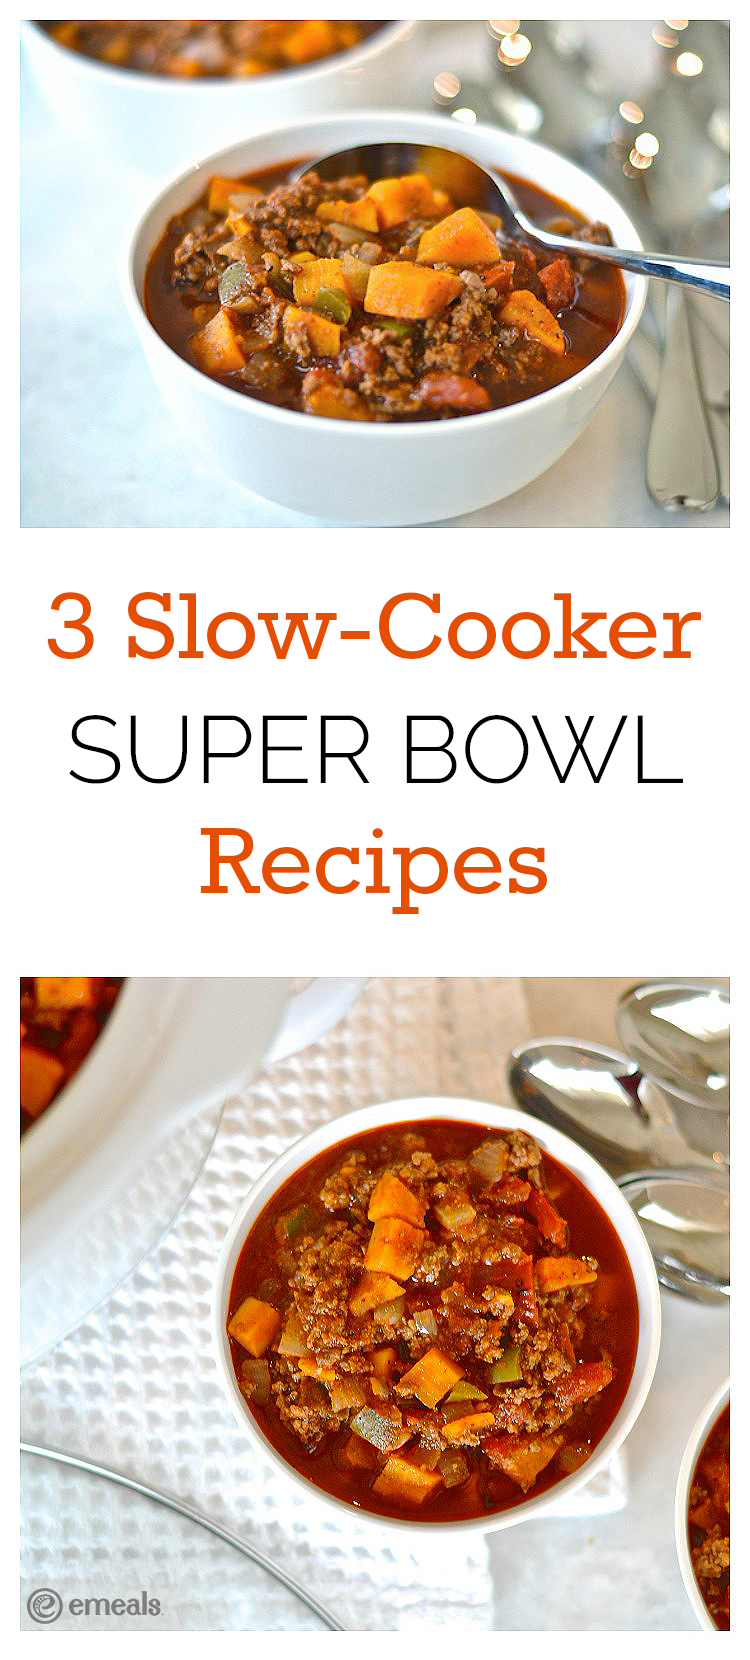 3 Slow-Cooker Super Bowl Recipes | eMeals